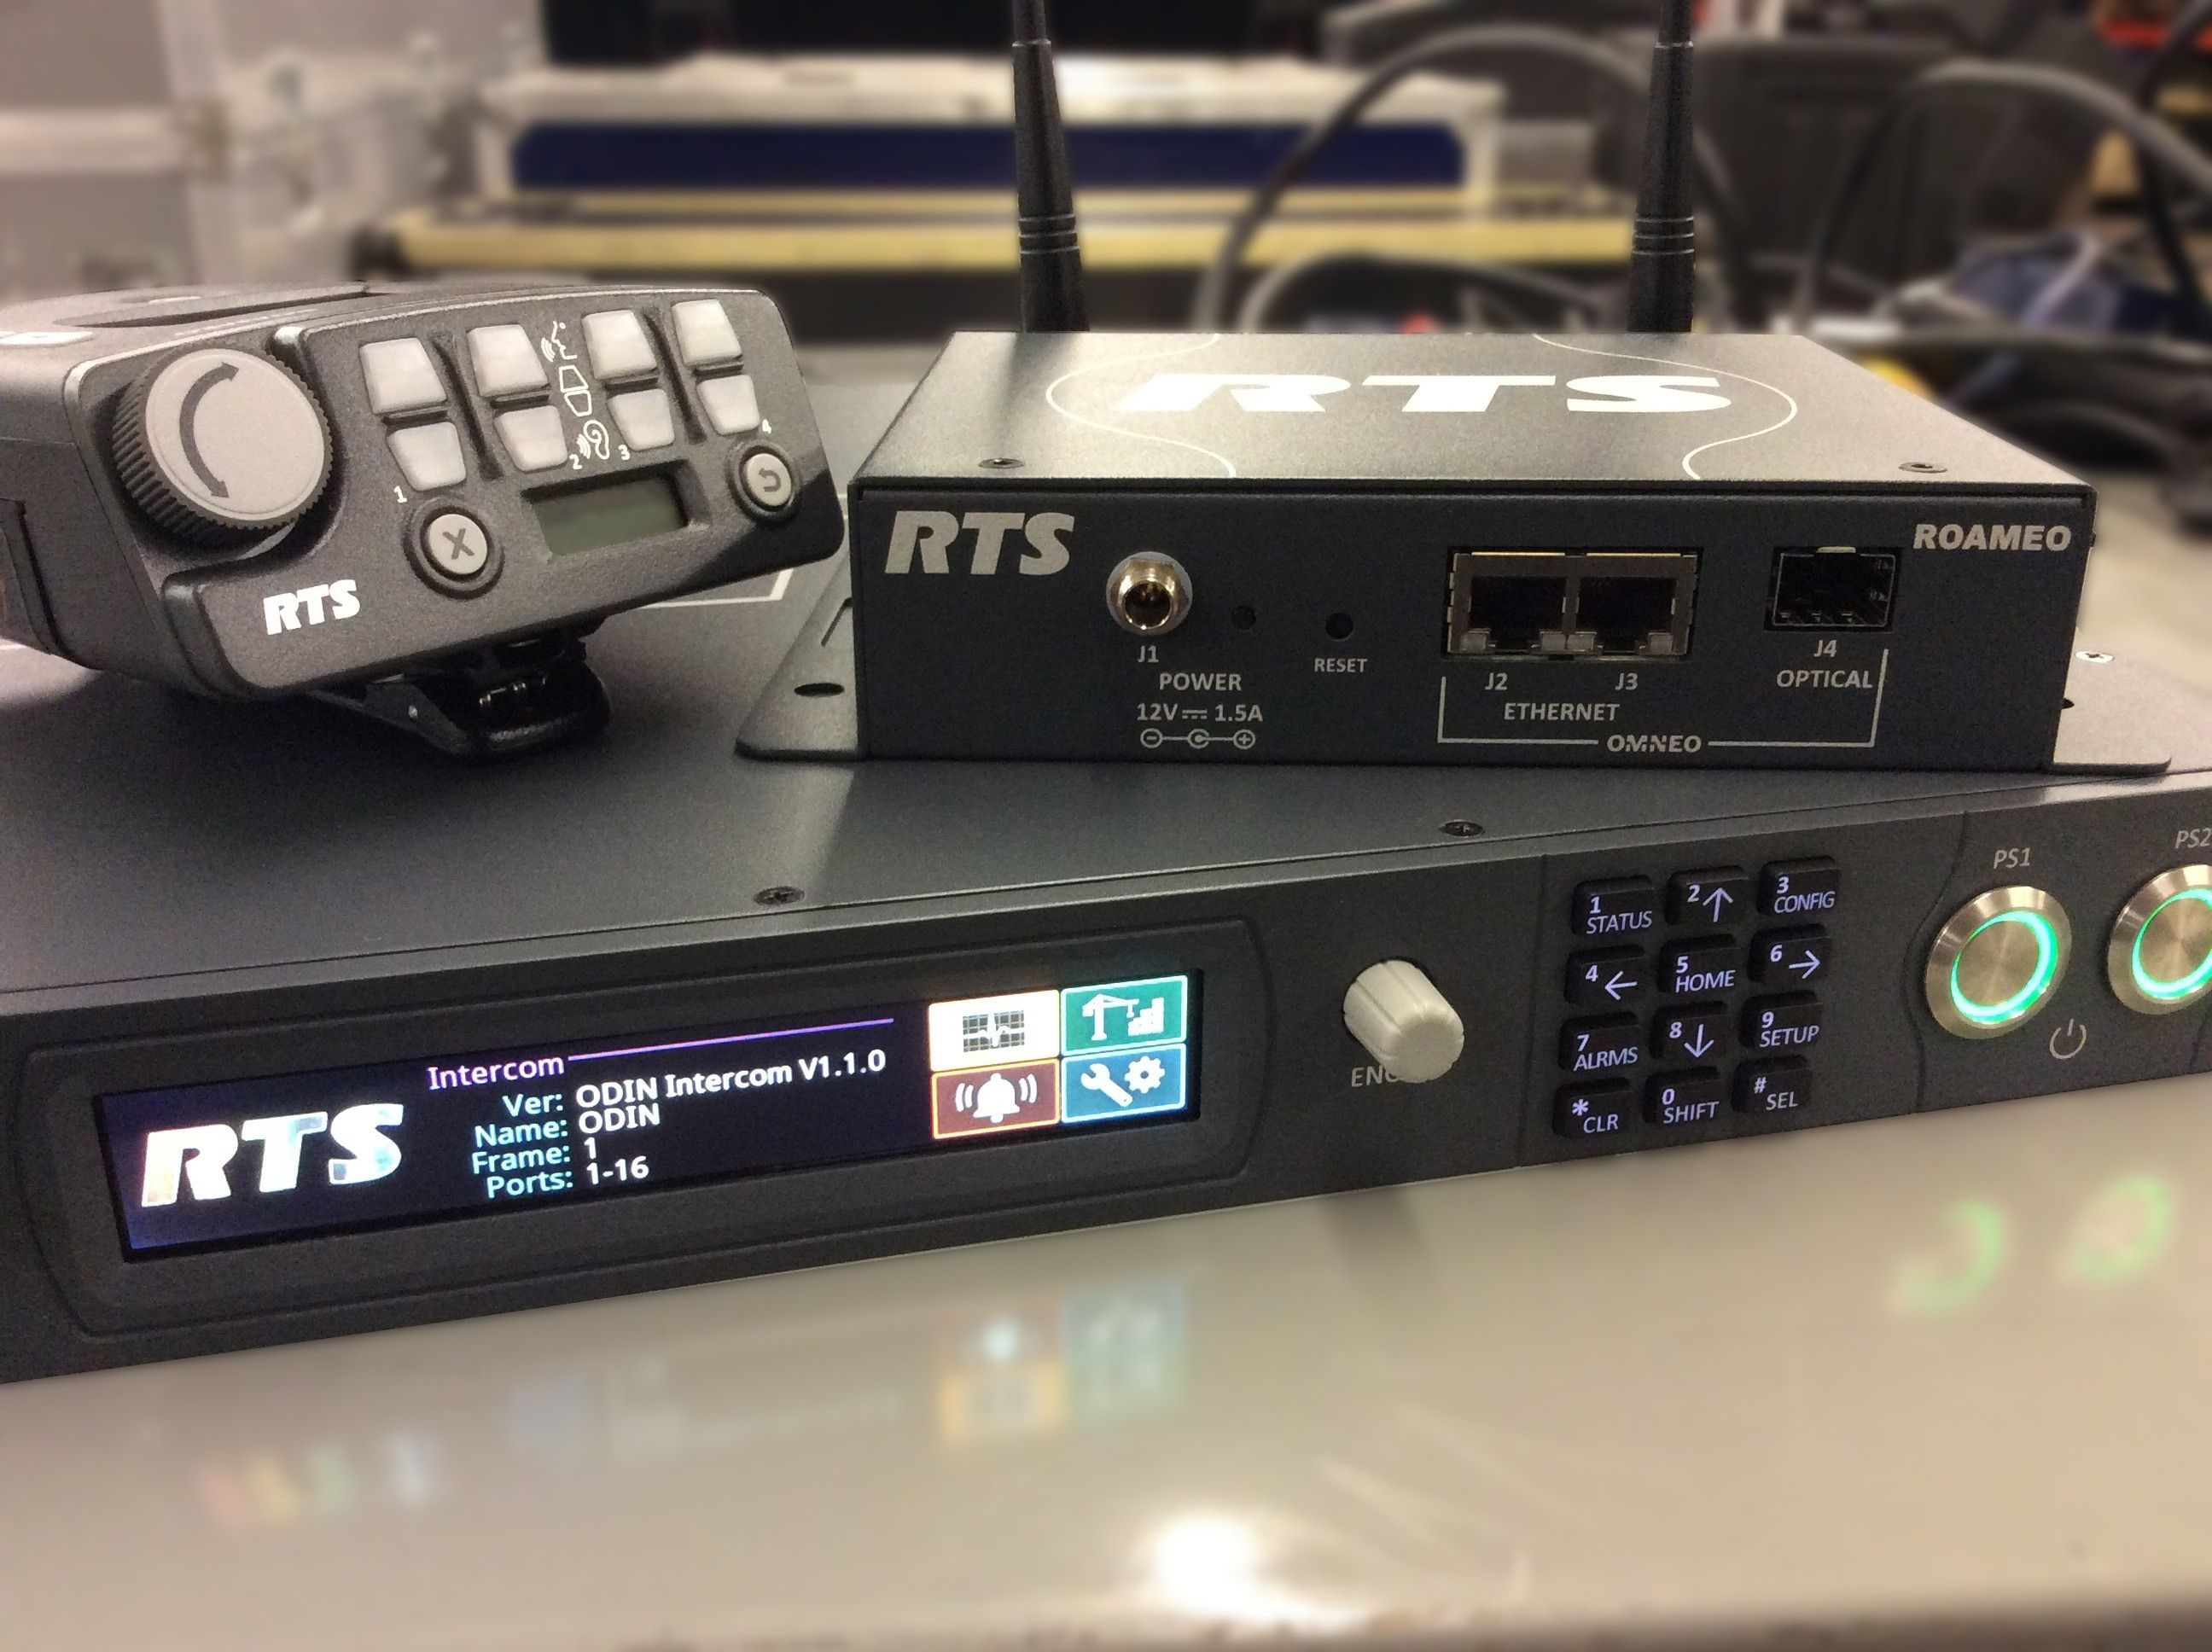 RTS ROAMEO Intercom System is at Hollywood Sound Systems